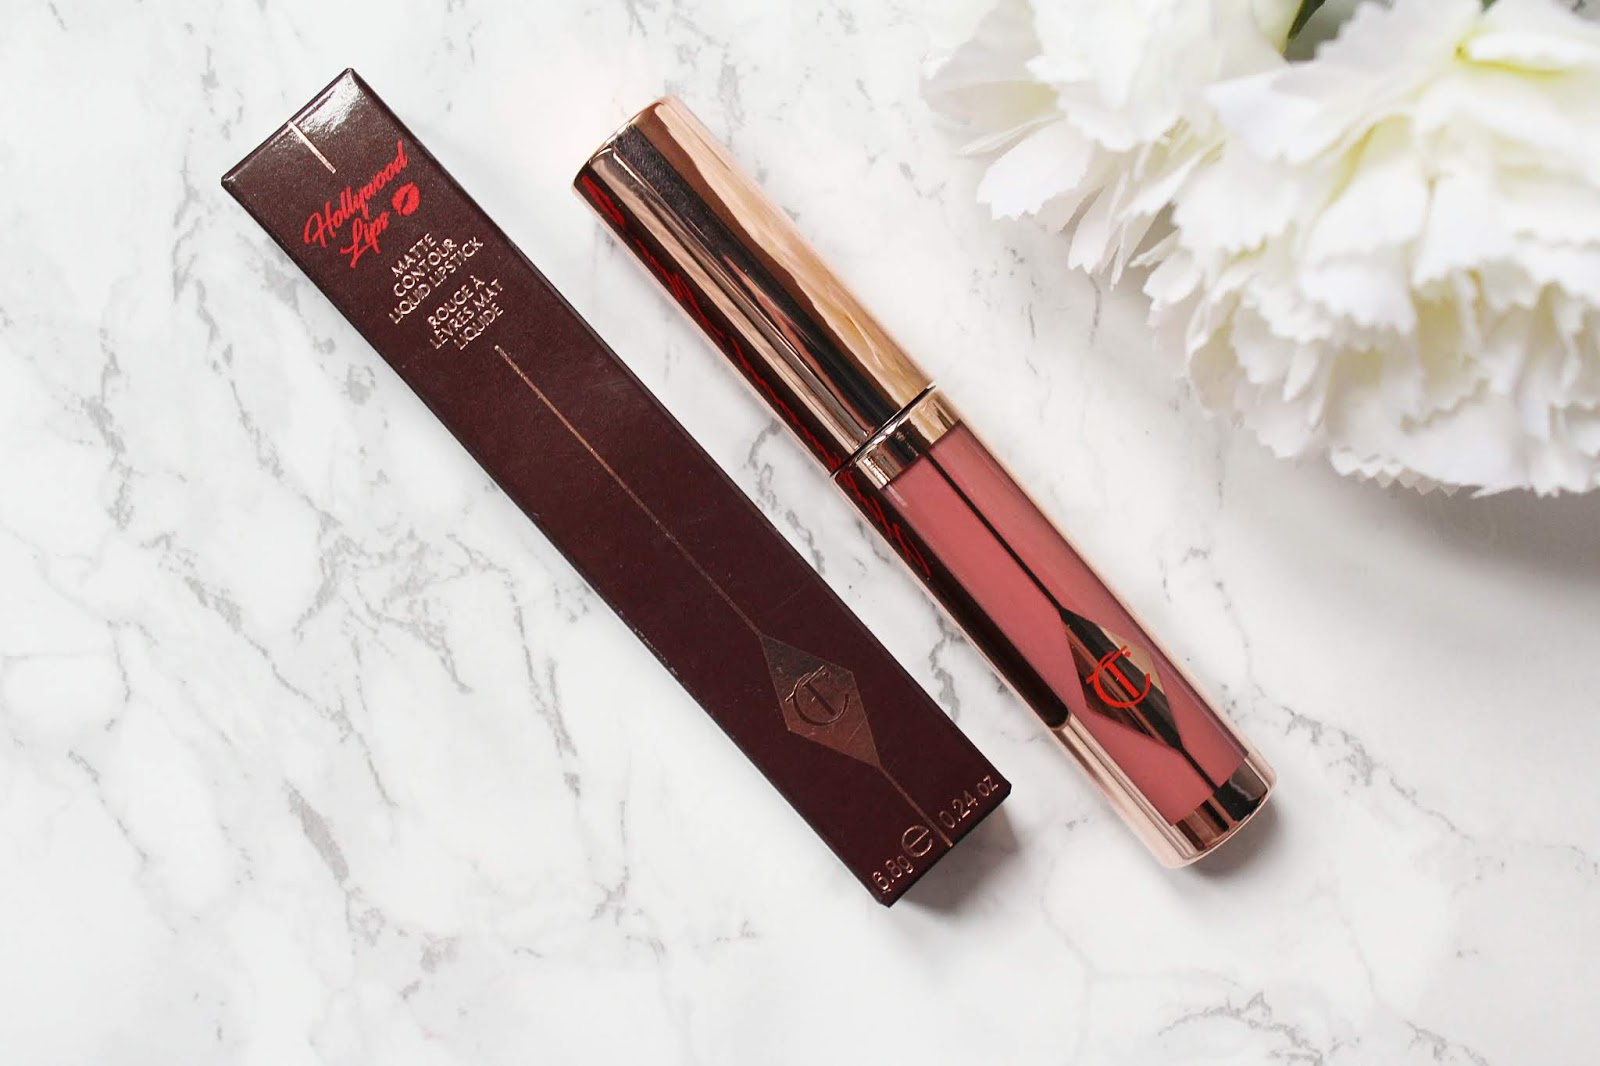 Charlotte Tilbury Hollywood Lips in Pin Up Pink